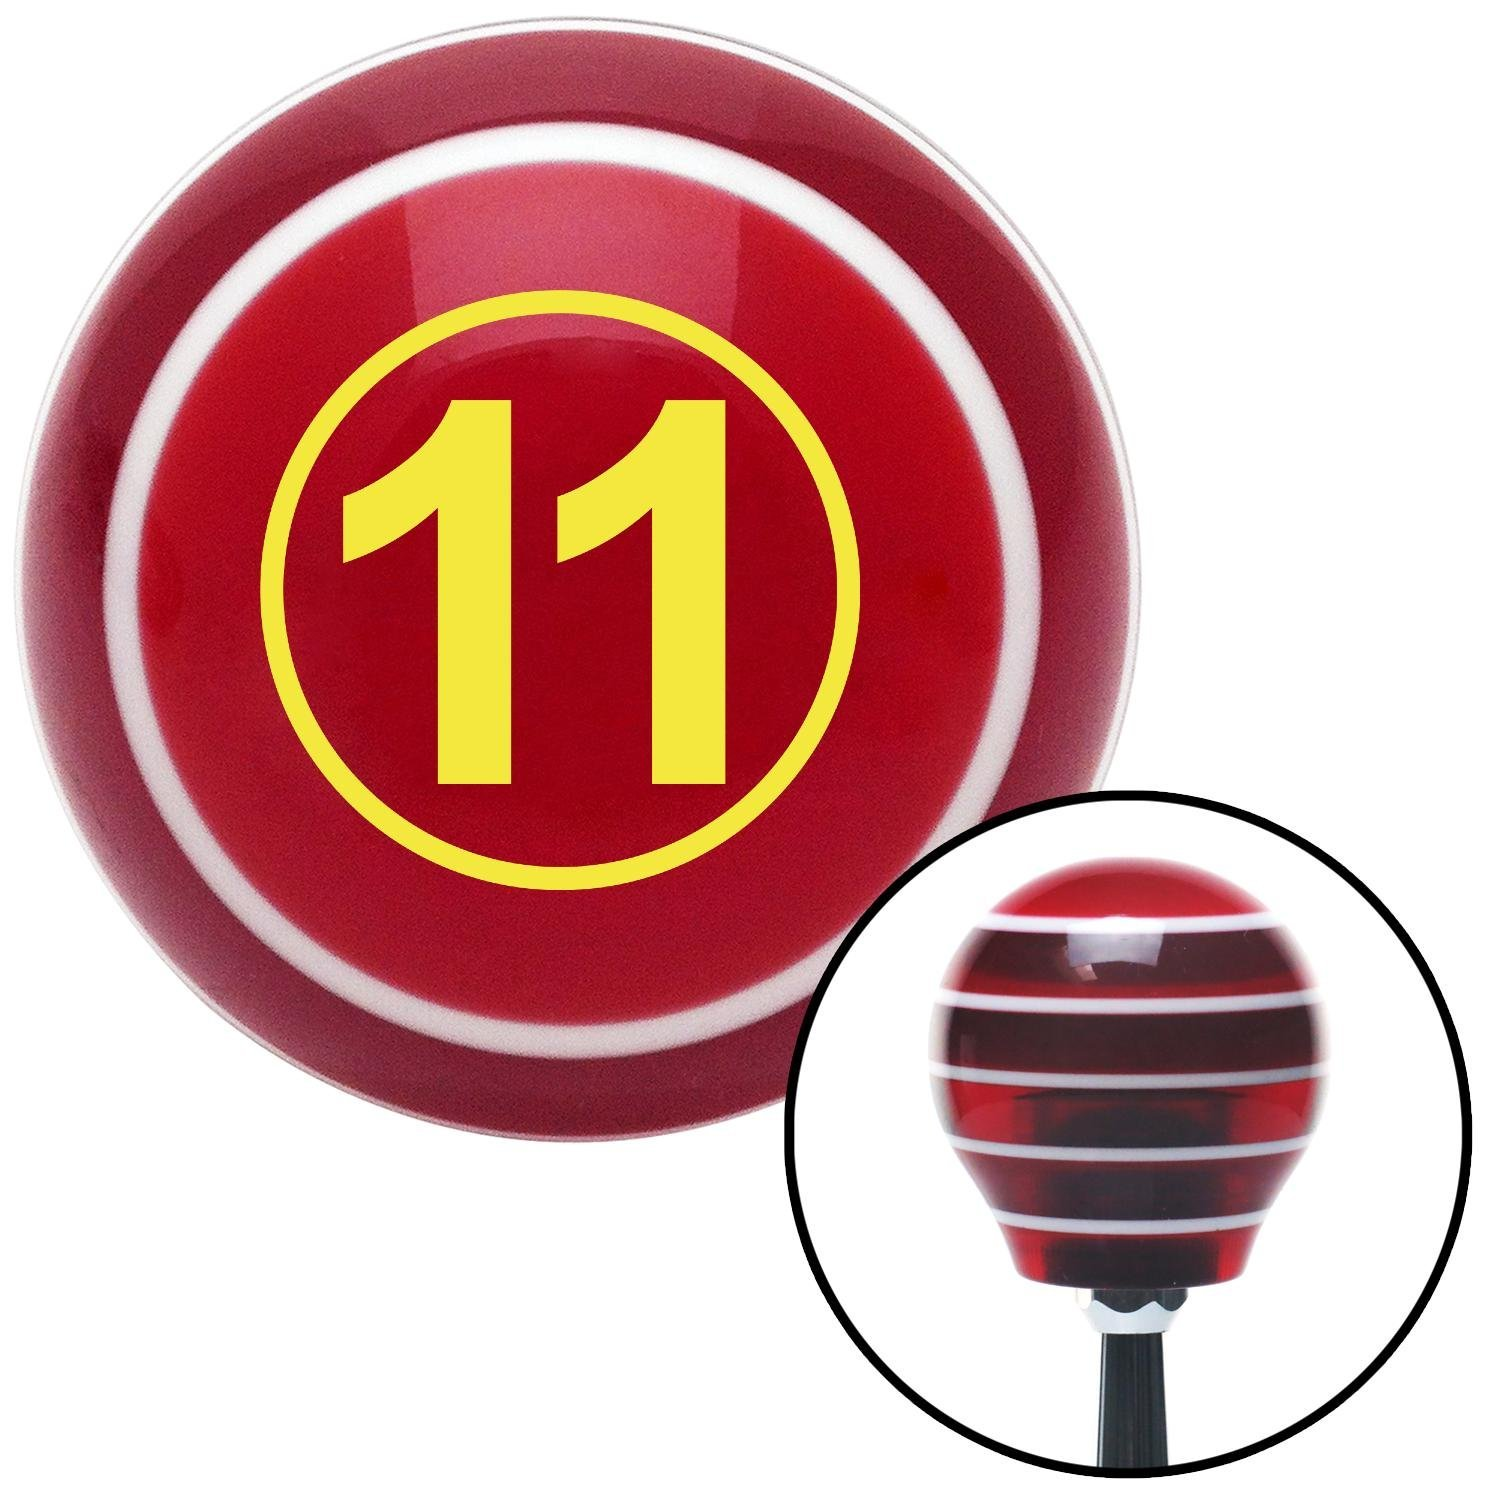 Yellow Ball #11 American Shifter 112264 Red Stripe Shift Knob with M16 x 1.5 Insert